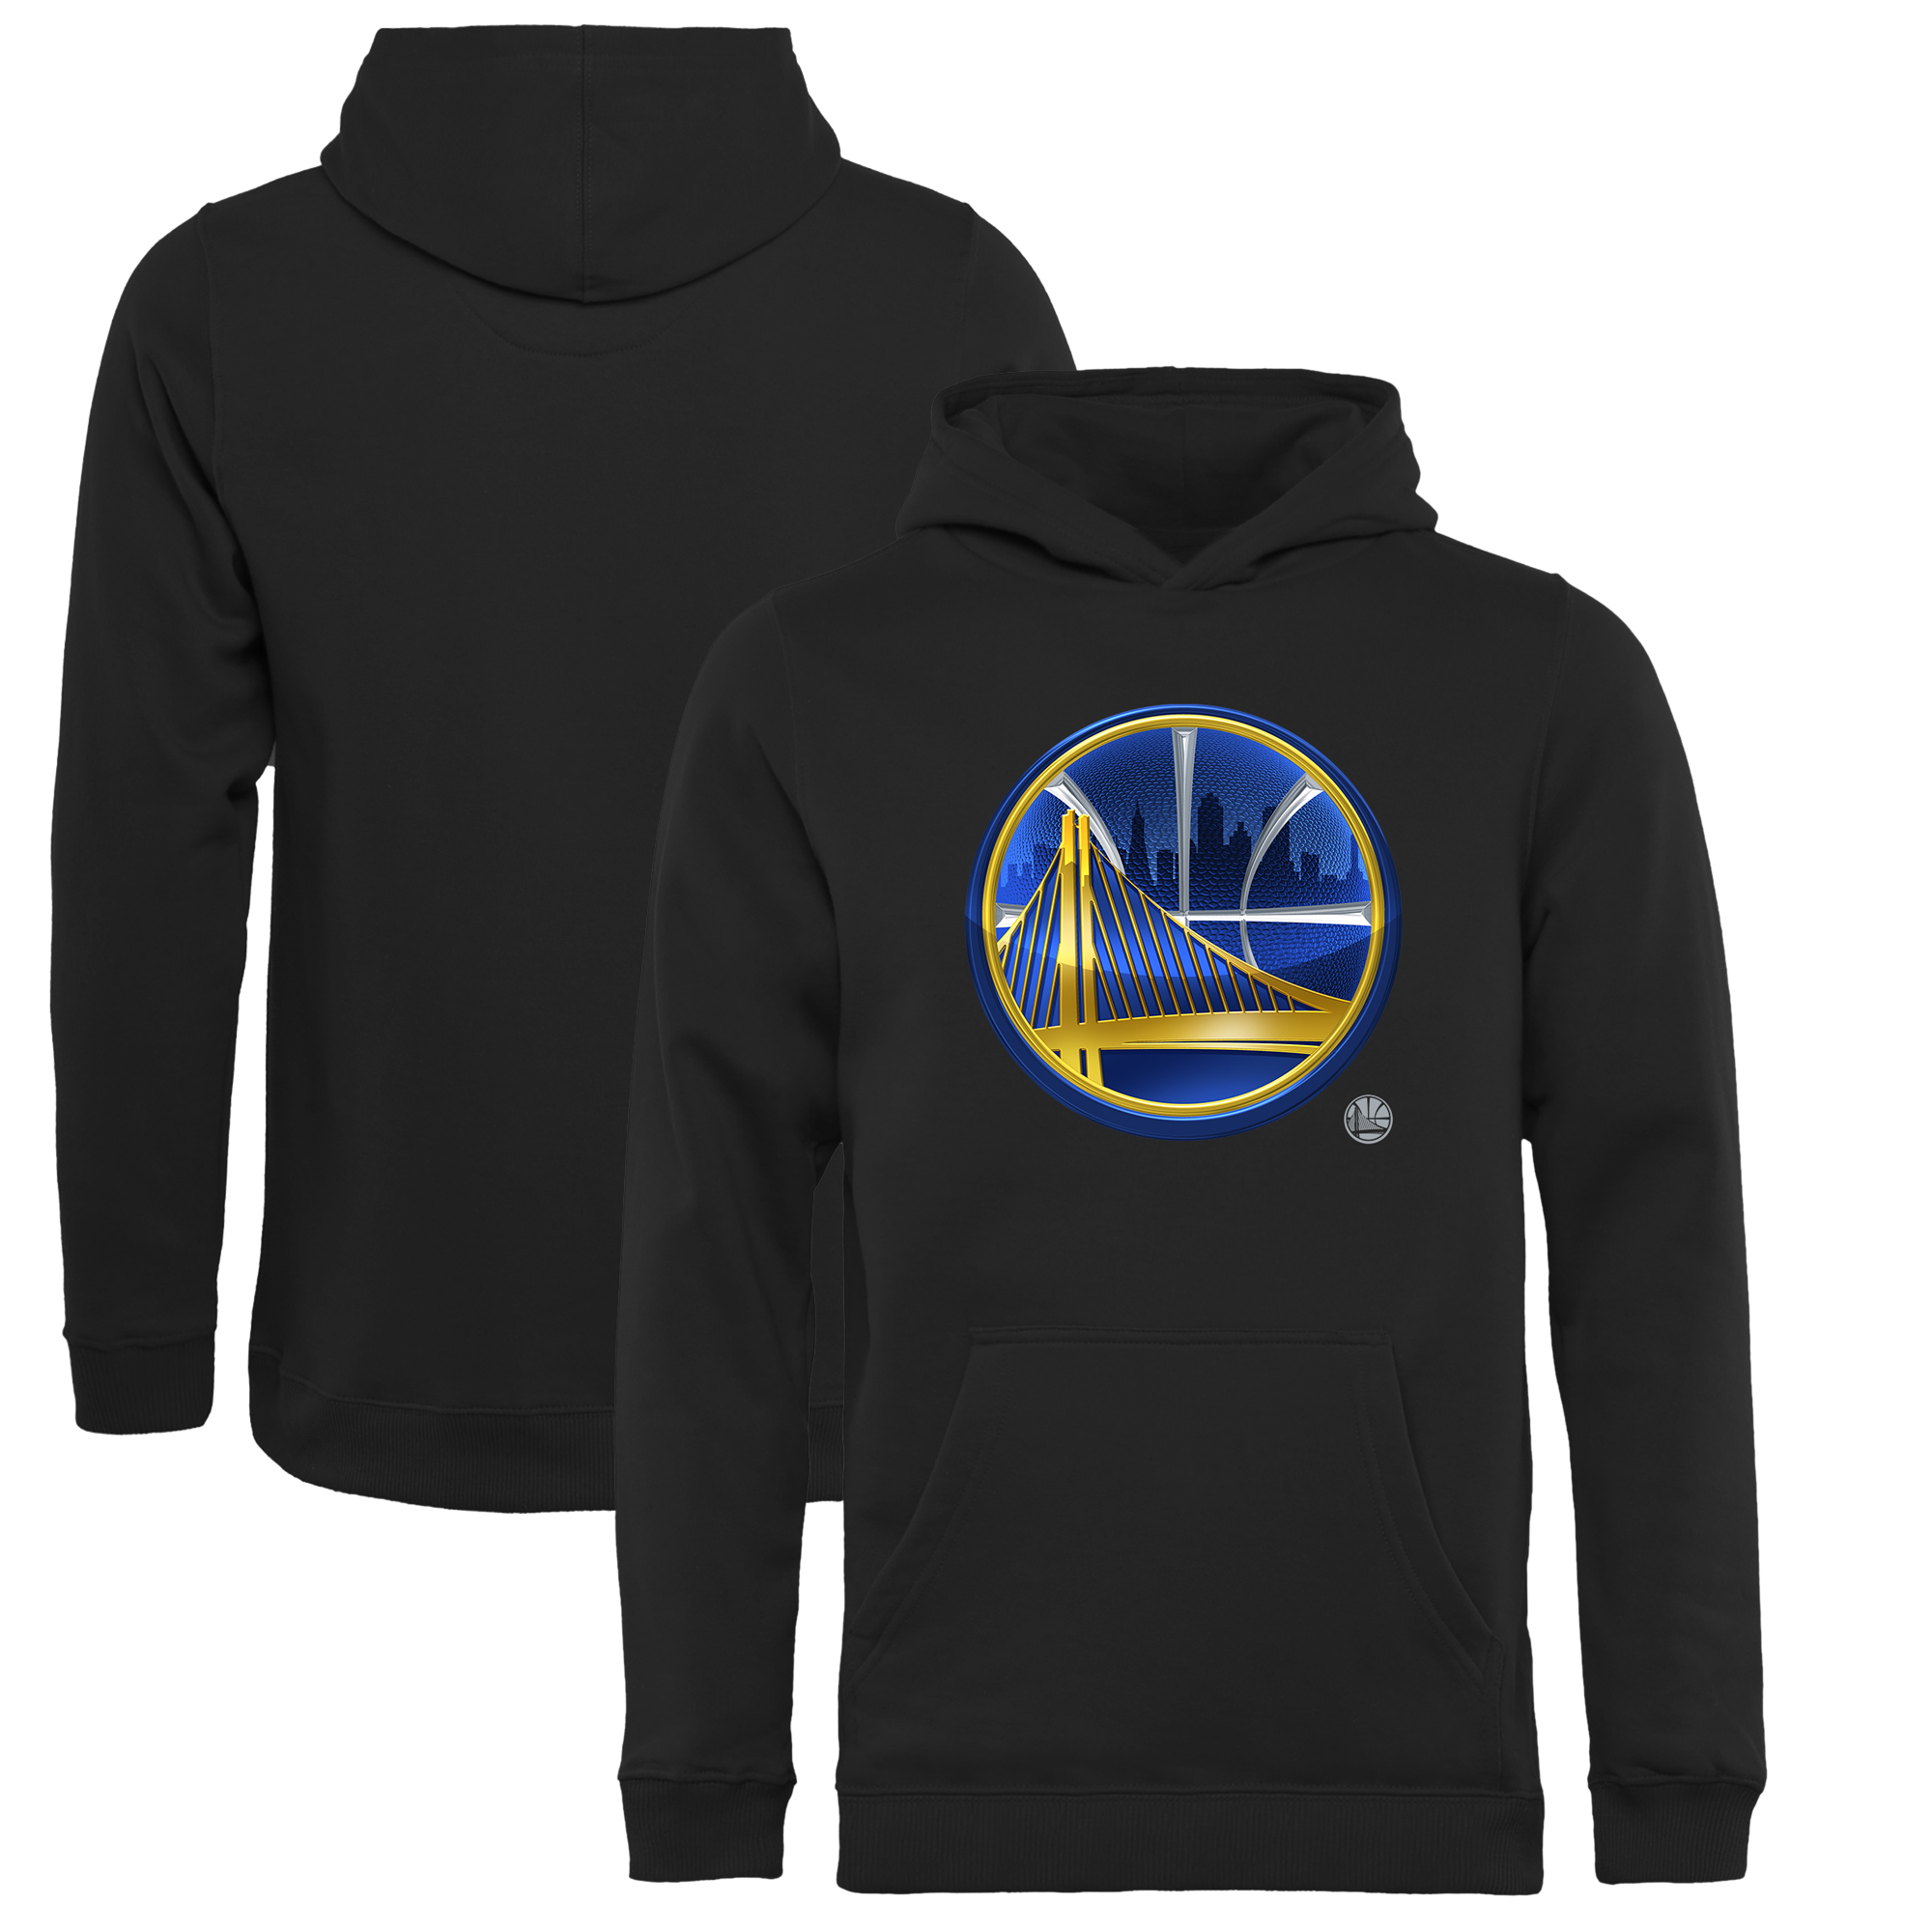 Golden State Warriors Fanatics Branded Youth Midnight Mascot Pullover Hoodie - Black